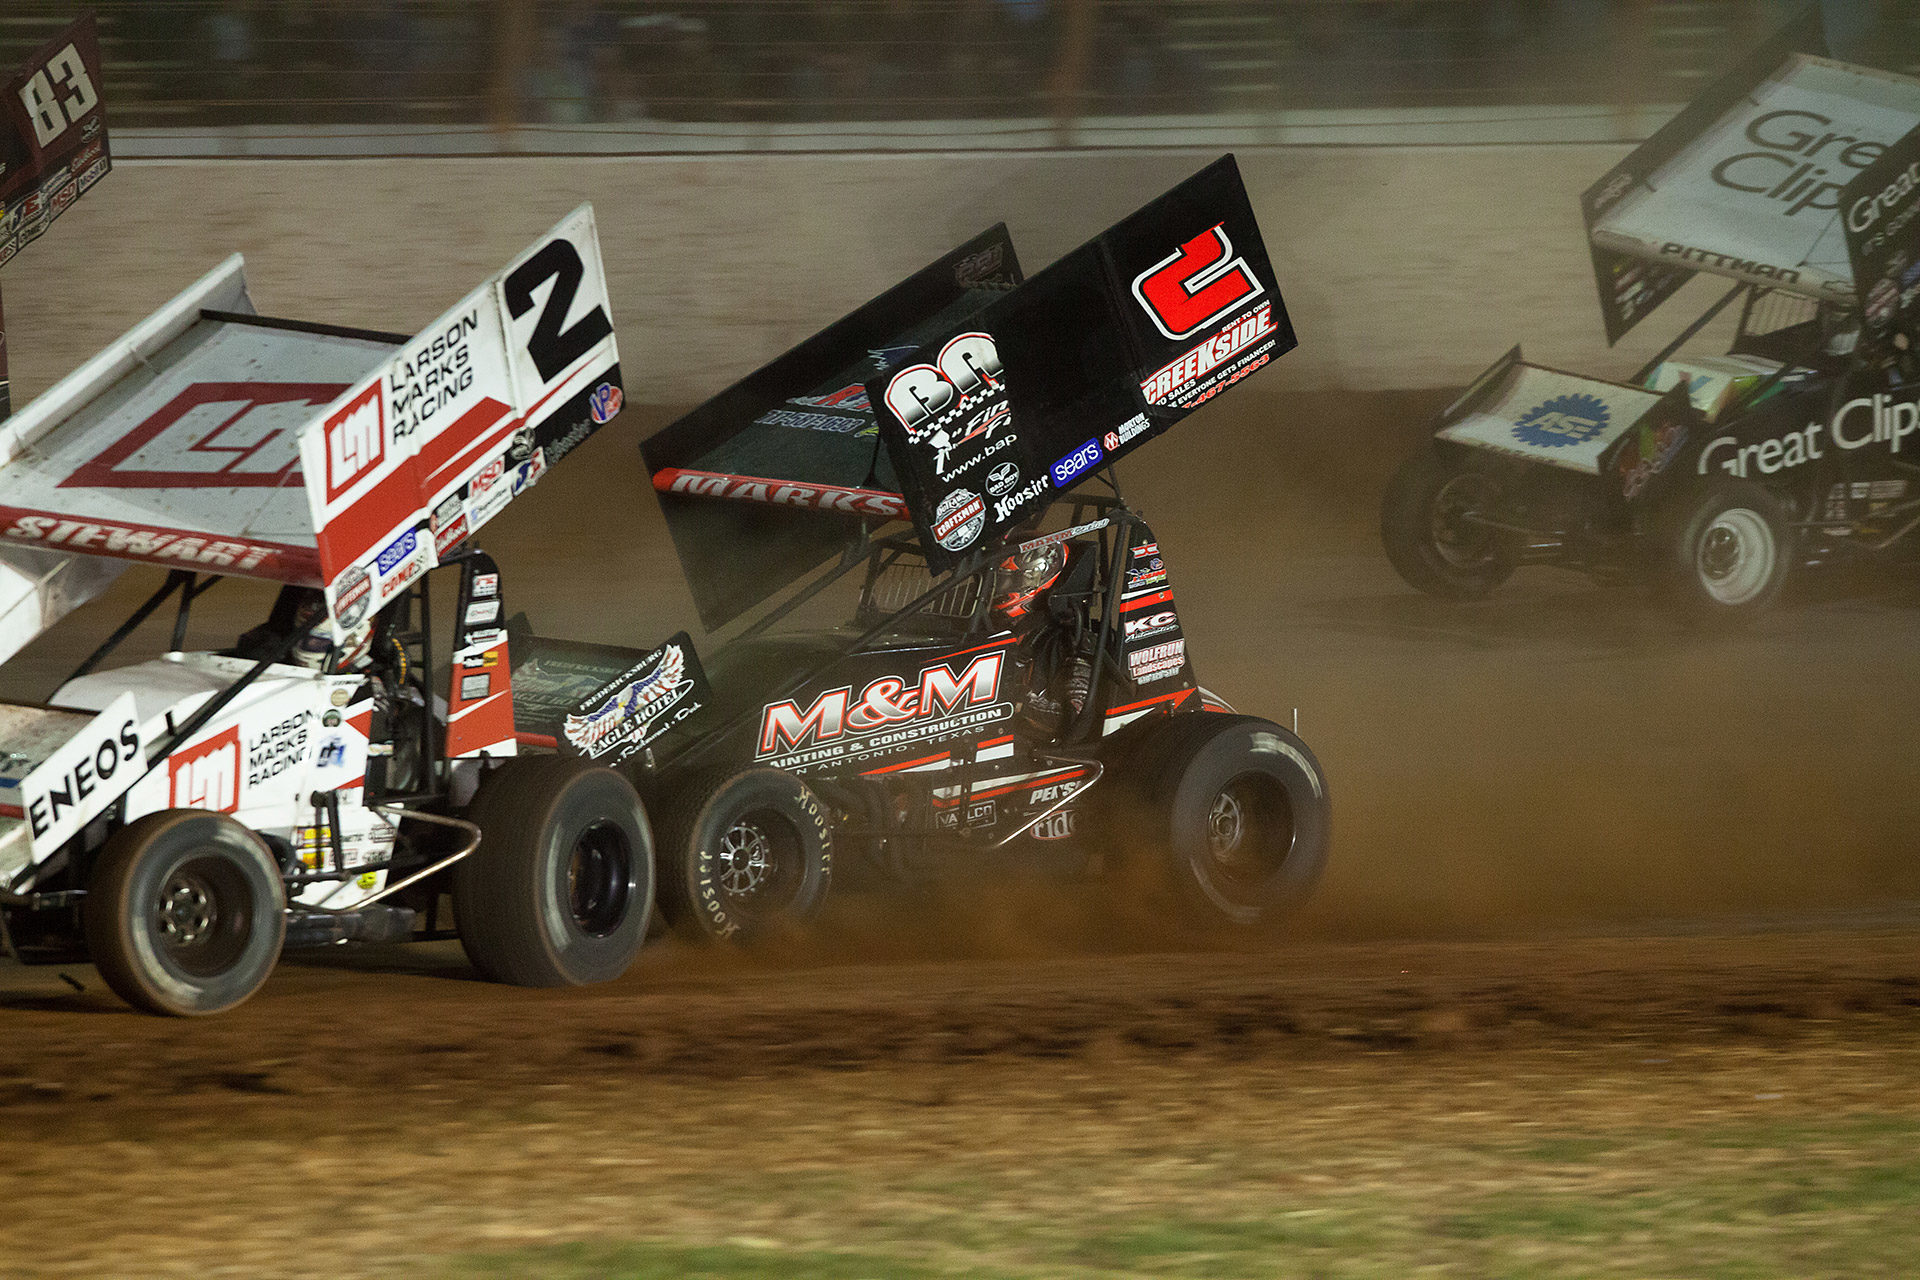 No. 2m Brent Marks and Larson Marks racer; Shane Stewart, duel in the feature race on night 2 of The World Of Outlaws World Finals in Charlotte, NC. (Jeffrey Turford / TDP)